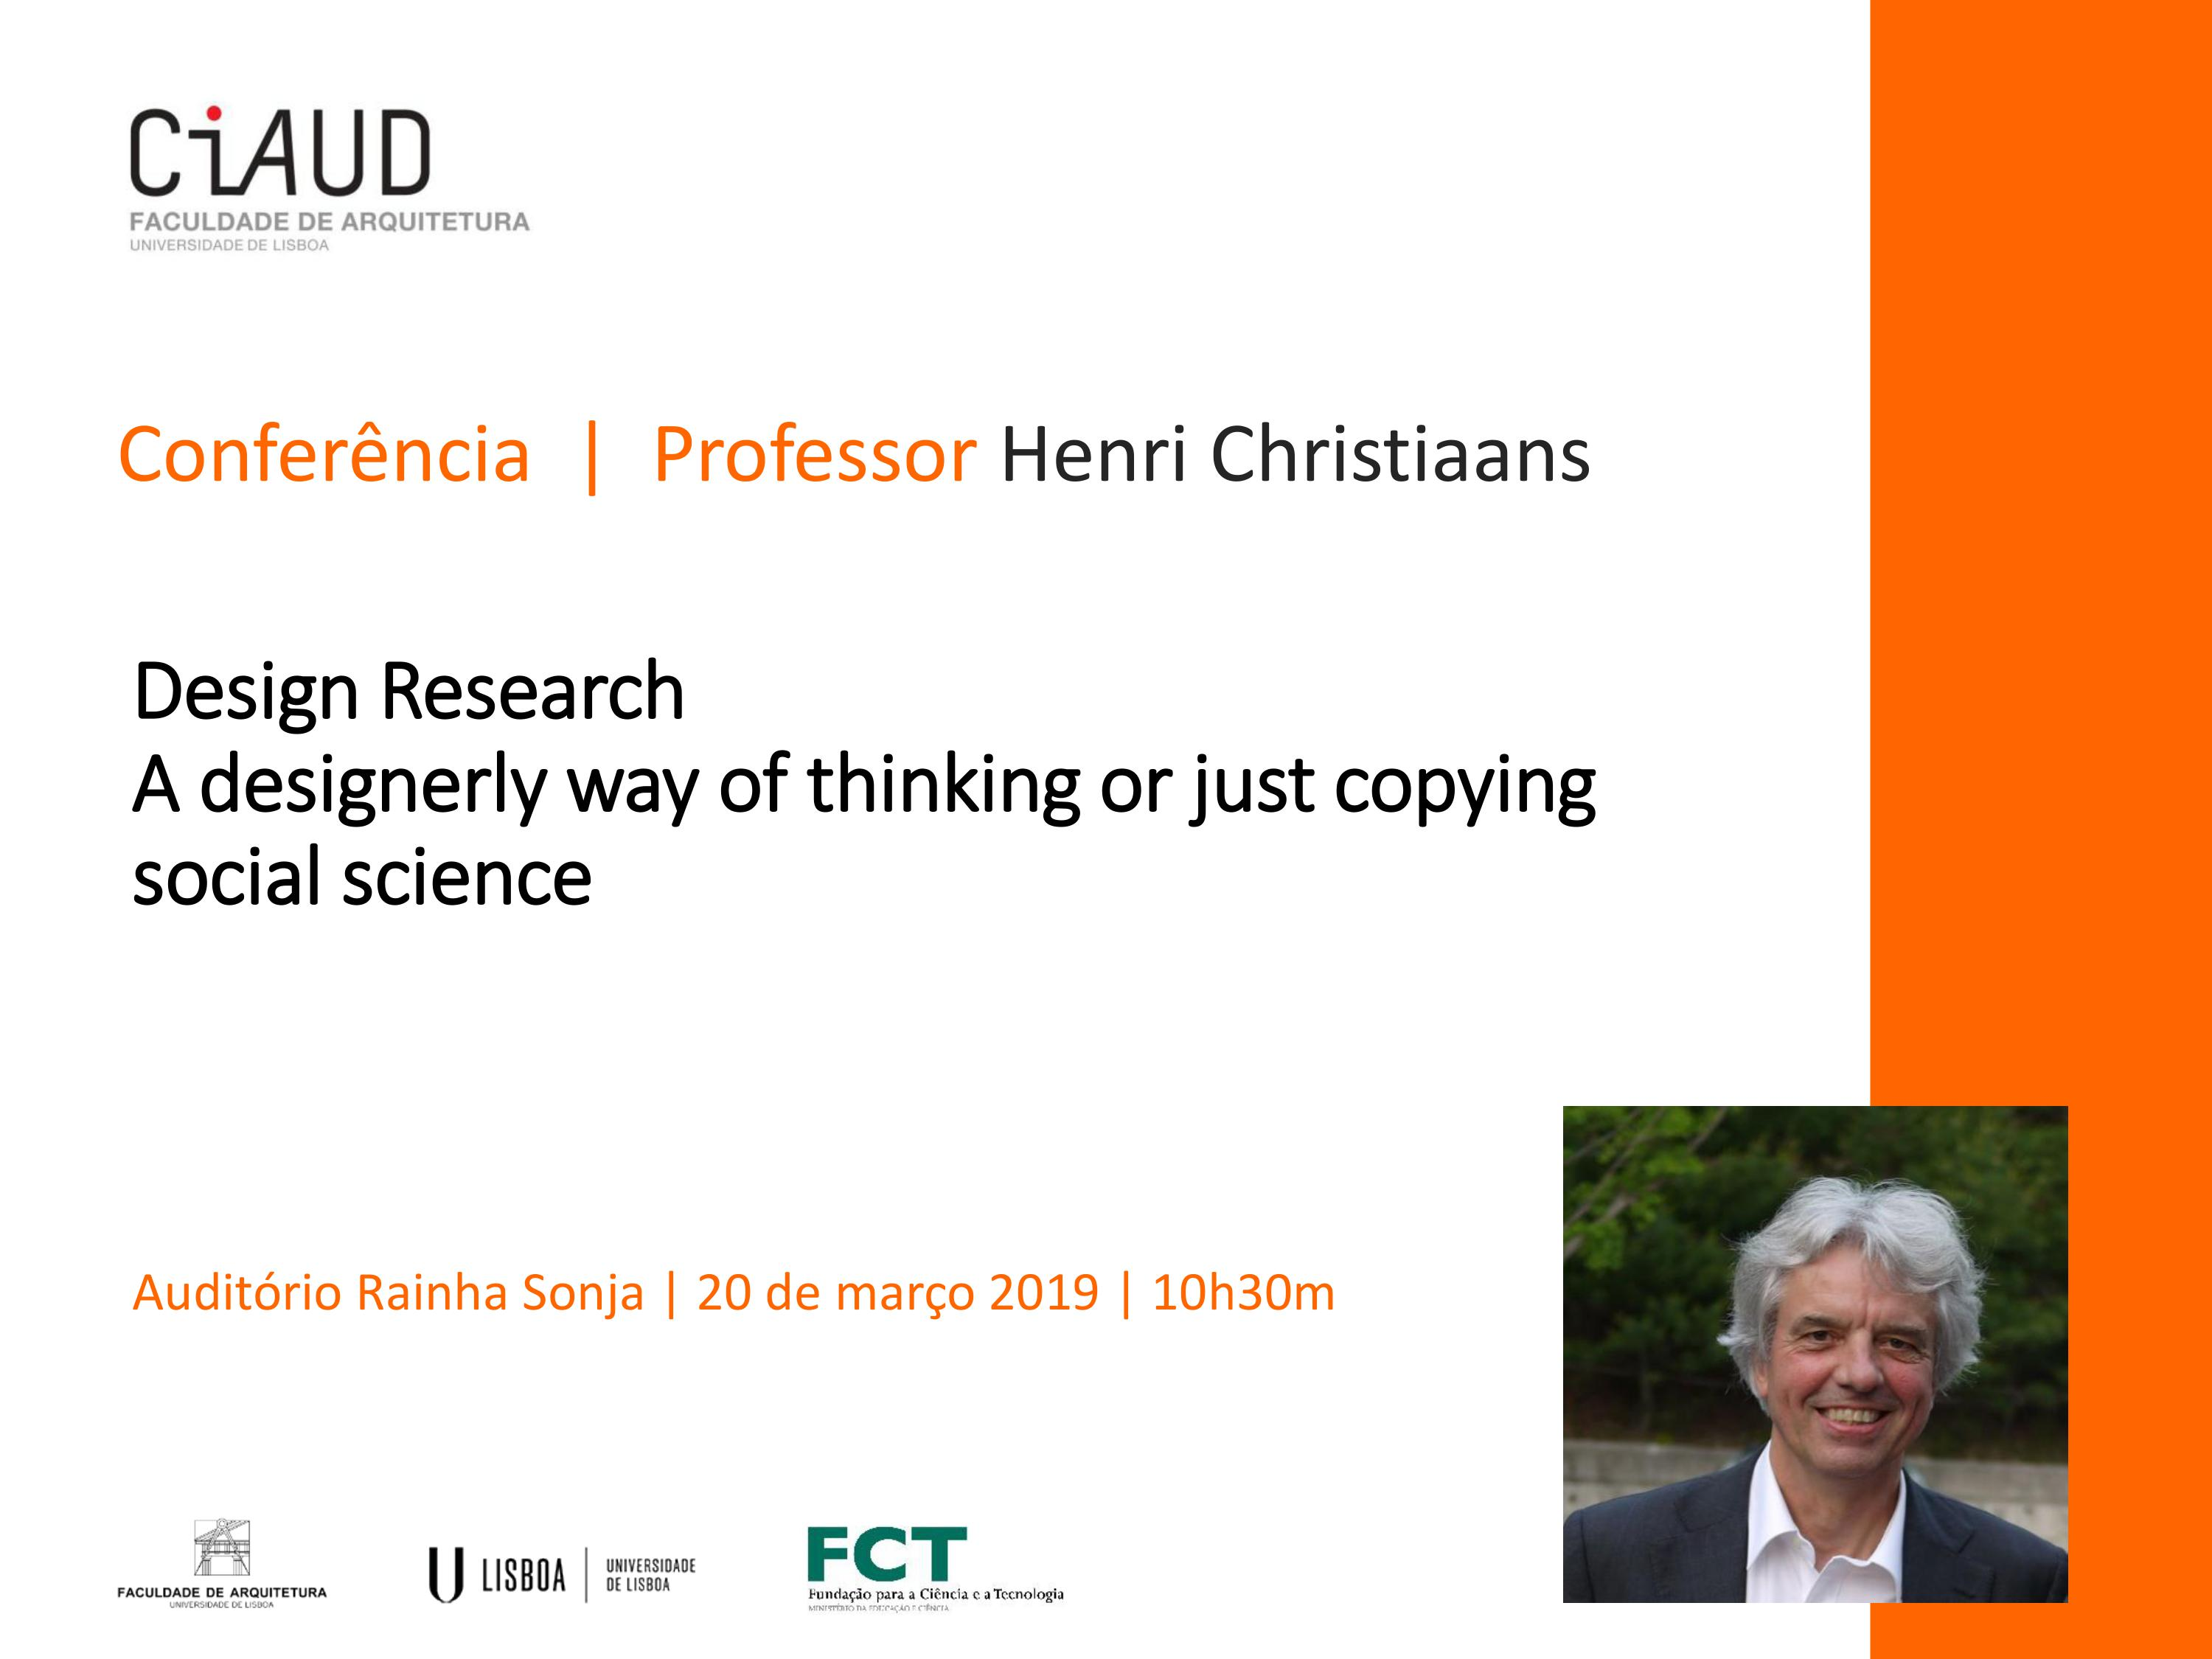 Conferência Design Research A designerly way of thinking or just copying social science